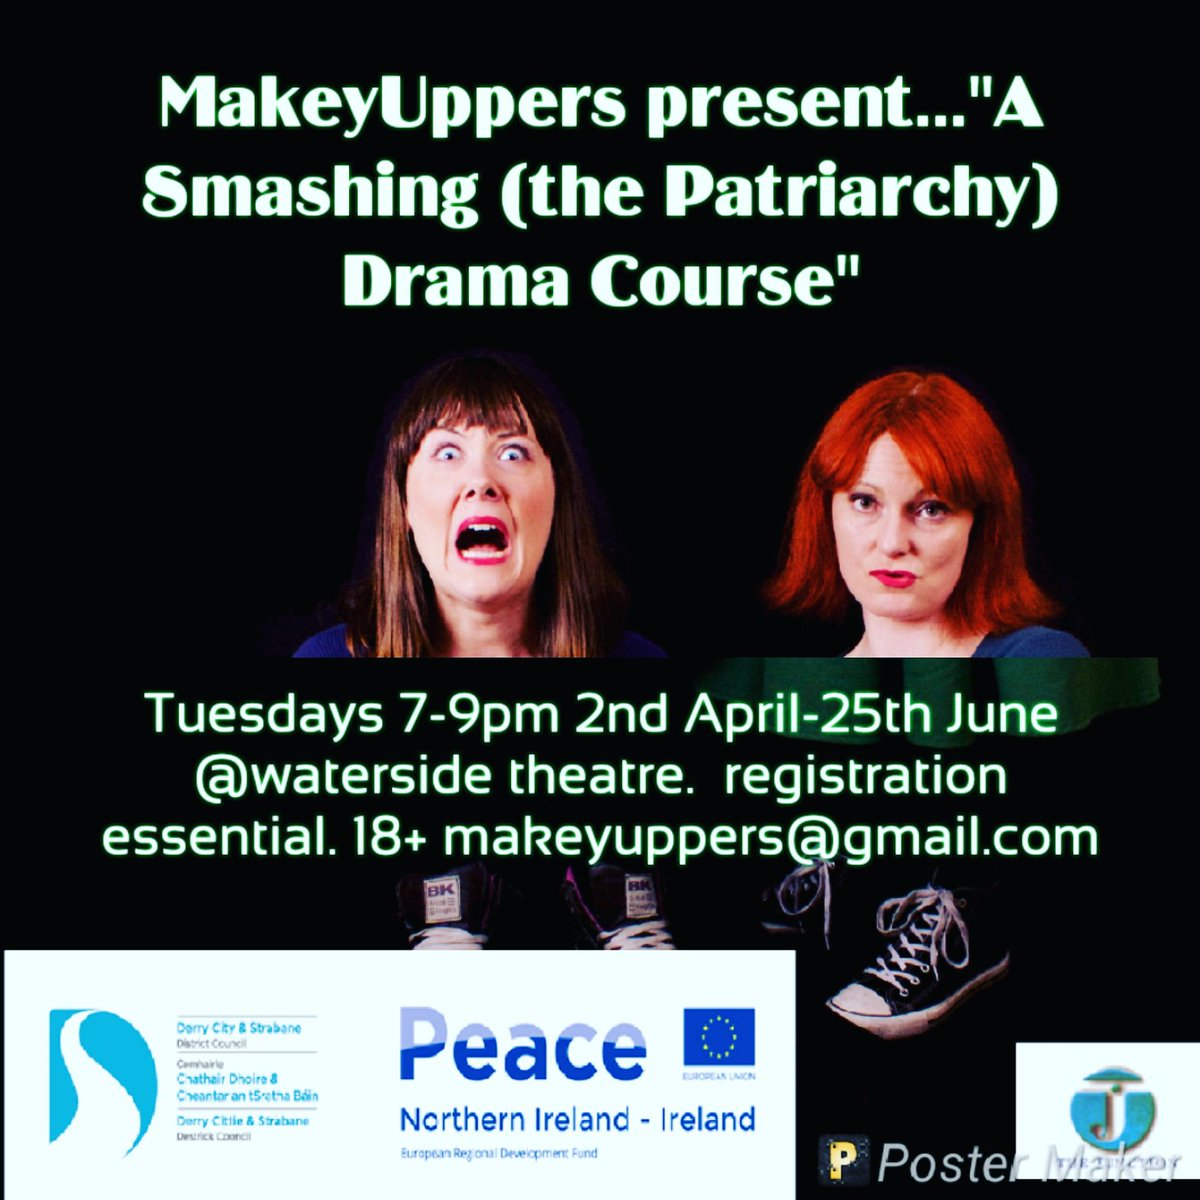 FREE DRAMA COURSE 18+. All levels of experience. Rooted in Patriarchy training. Expression of interest form essential HERE: https://www.surveymonkey.co.uk/r/SQT5XTD closing date 31st March @watersidetheatr @Foylewomensinfo @NWCN01 @HolywellT #drama #Empowerment #newThings #SmashThePatriarchy